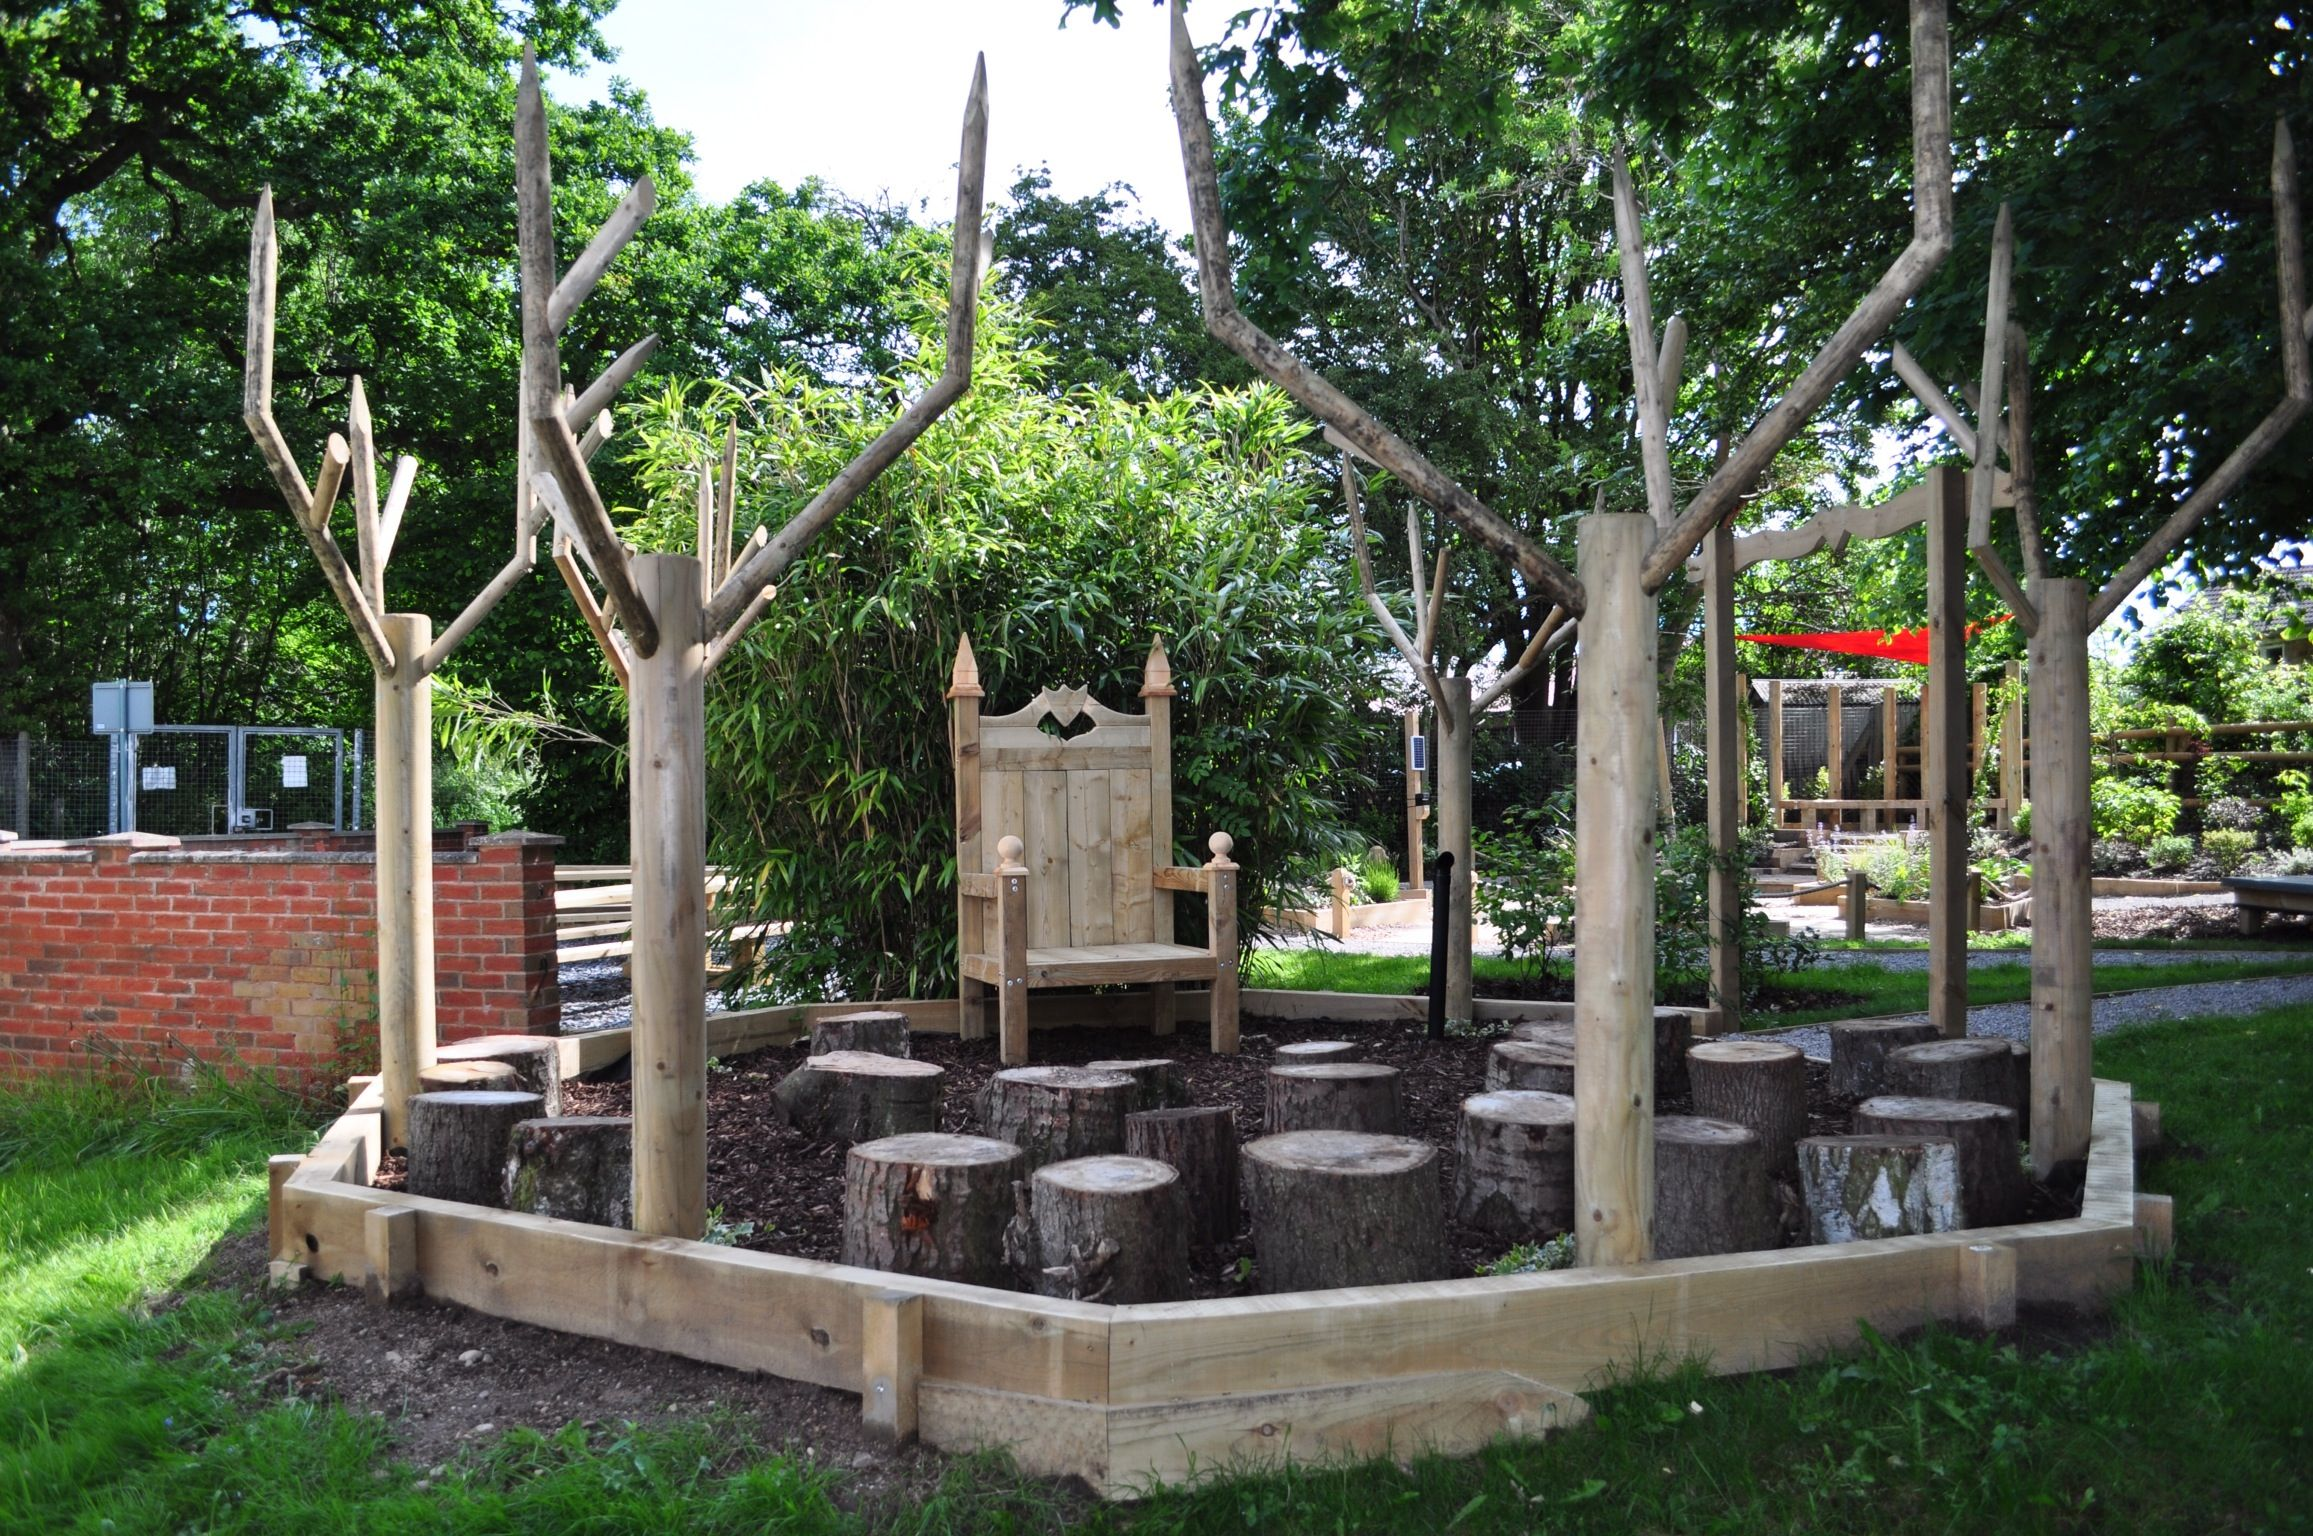 Story Telling Circle Outdoor Classroom Built For Web Heath First School Redditch By Jill D Outdoor Classroom School Outdoor Classroom Outdoor Learning Spaces